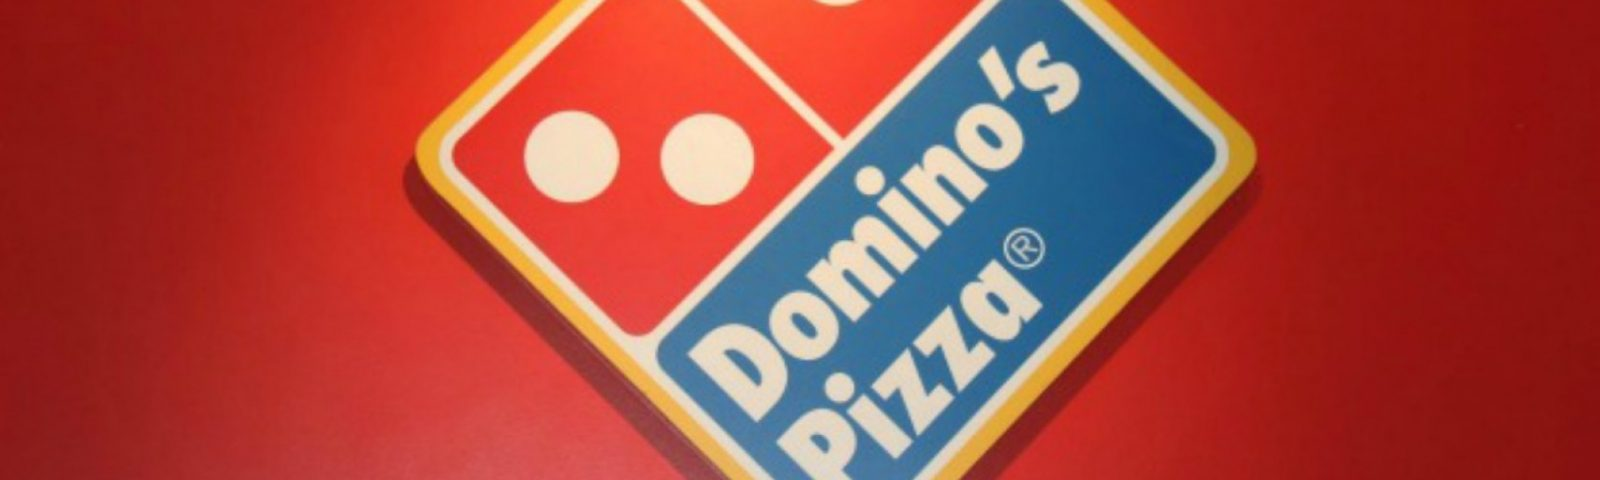 Joint Venture quer expandir Domino's Pizza na Alemanha